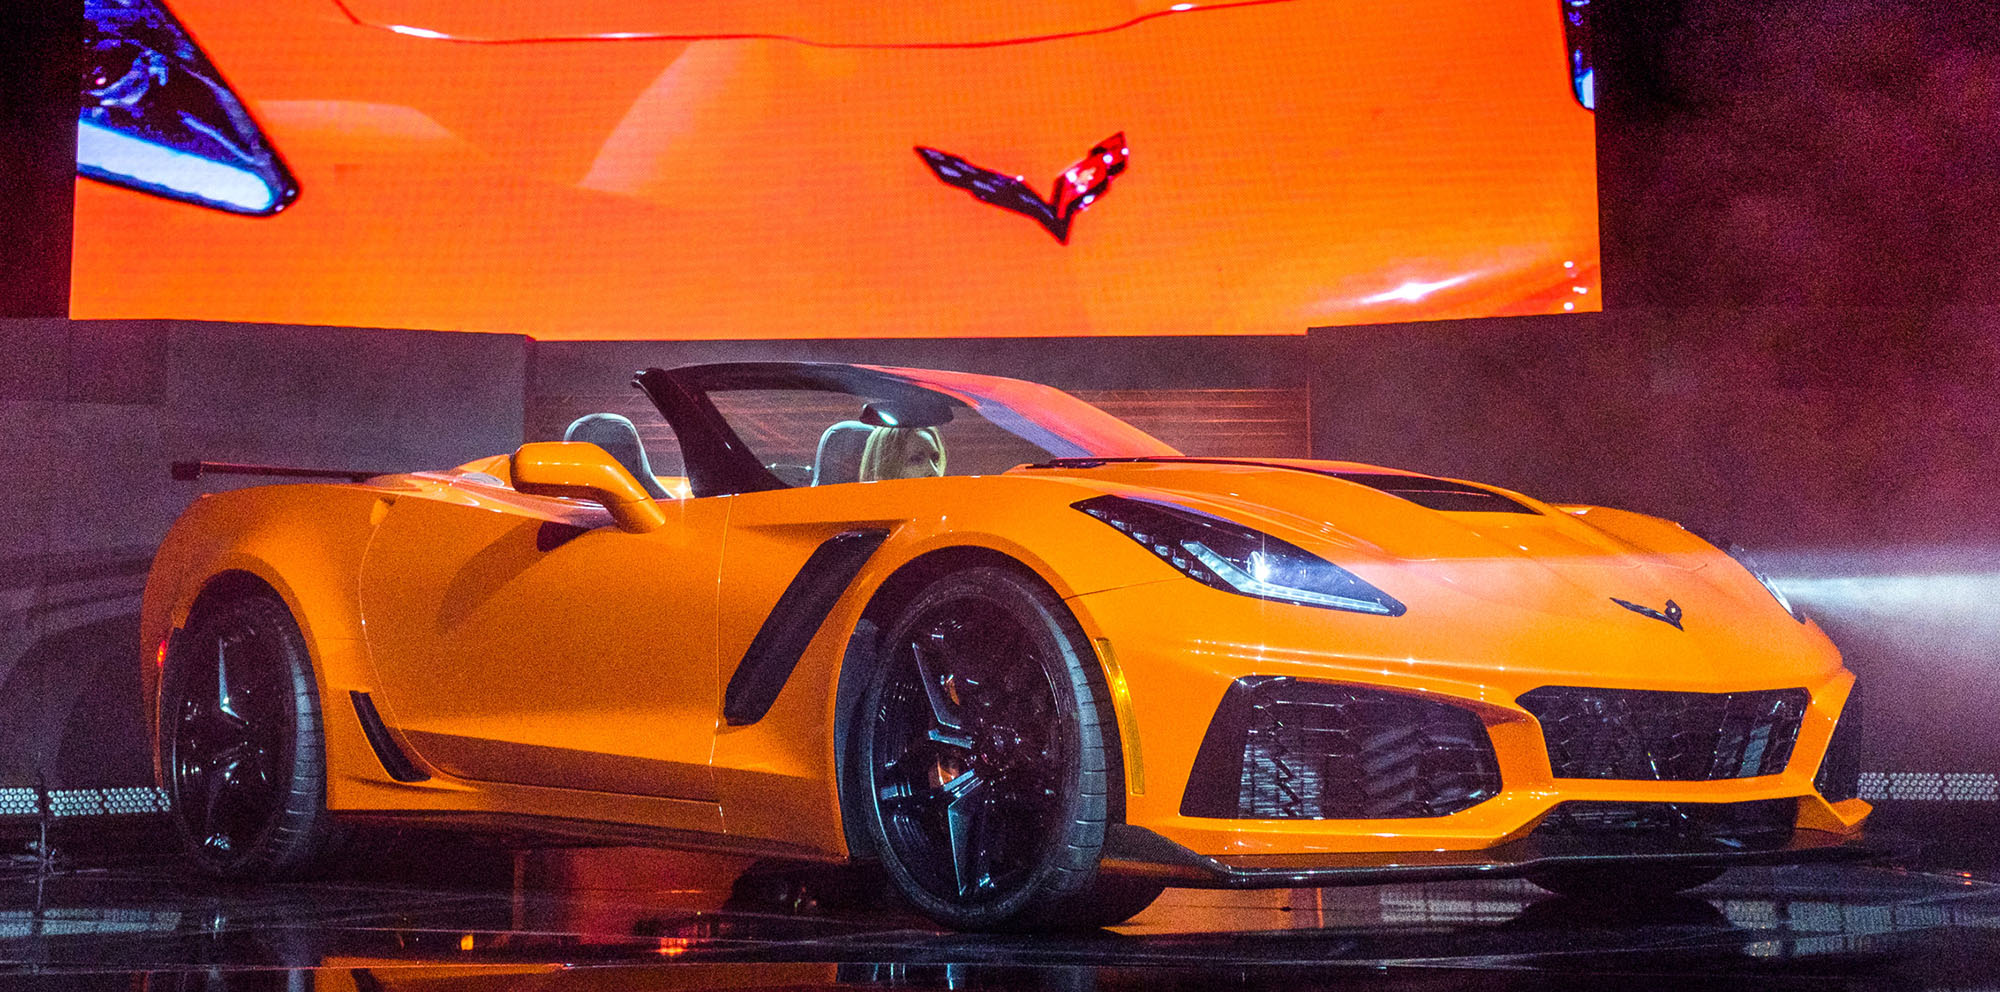 2018 Chevrolet Corvette ZR1 convertible unveiled - Photos ...